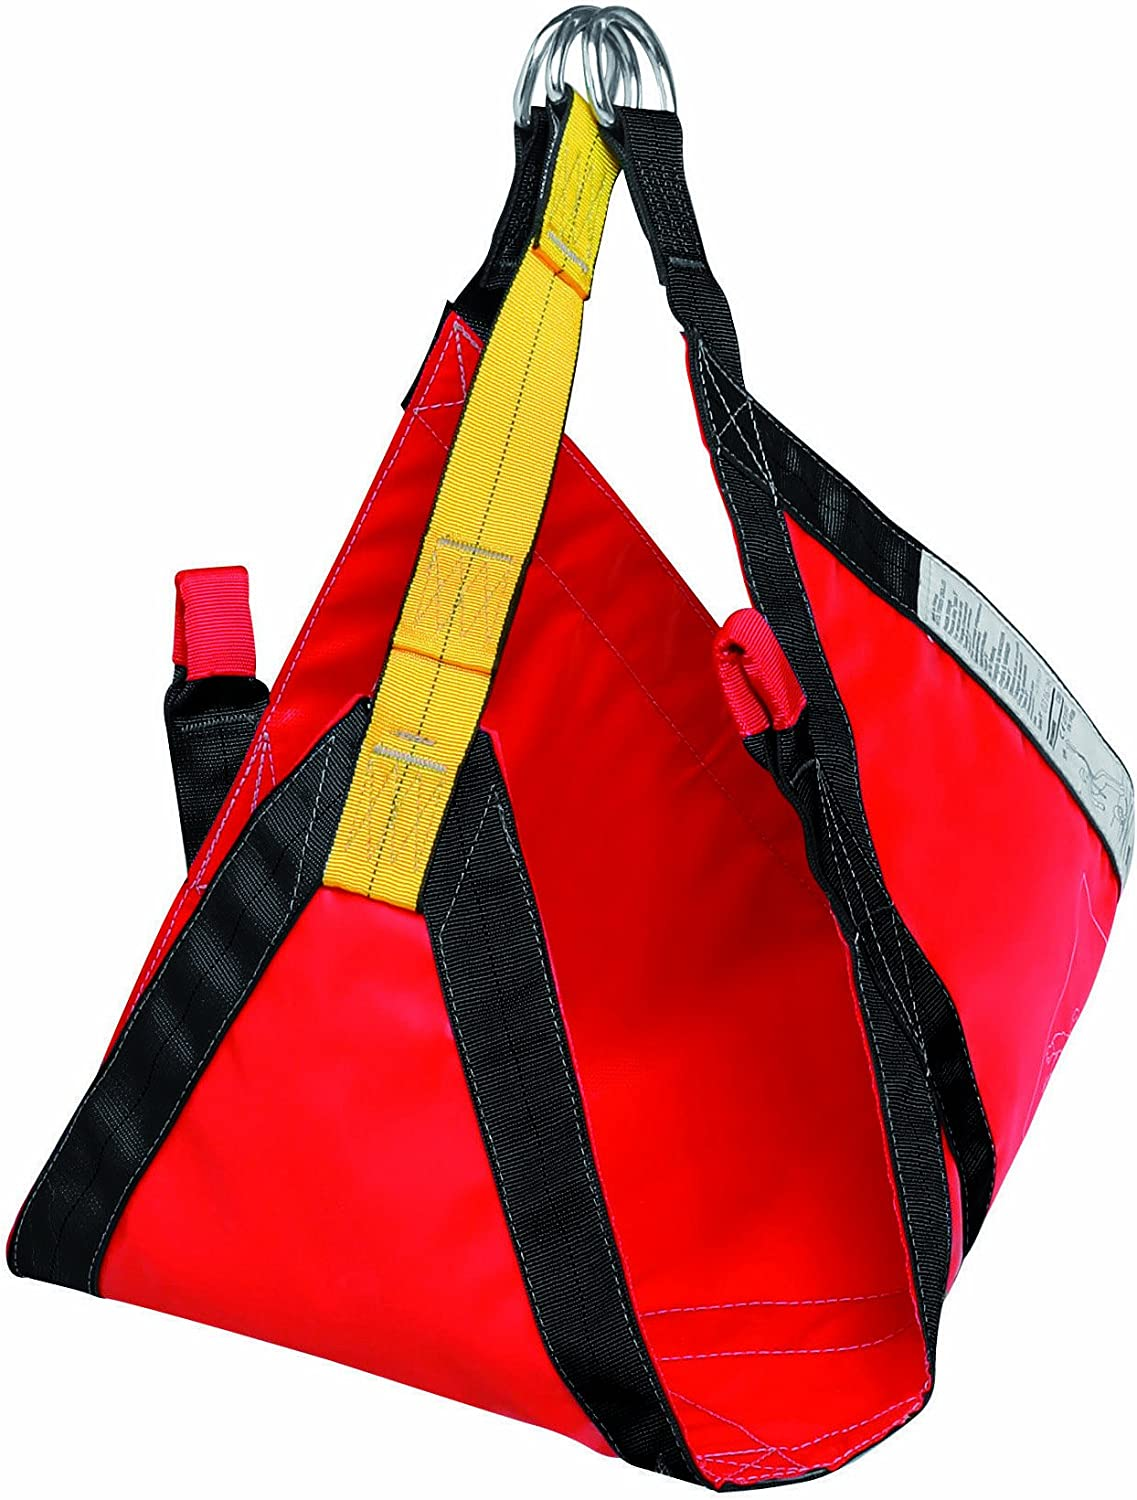 PETZL - BERMUDE Evacuation Without Shoulder Straps Triangle Genuine New life